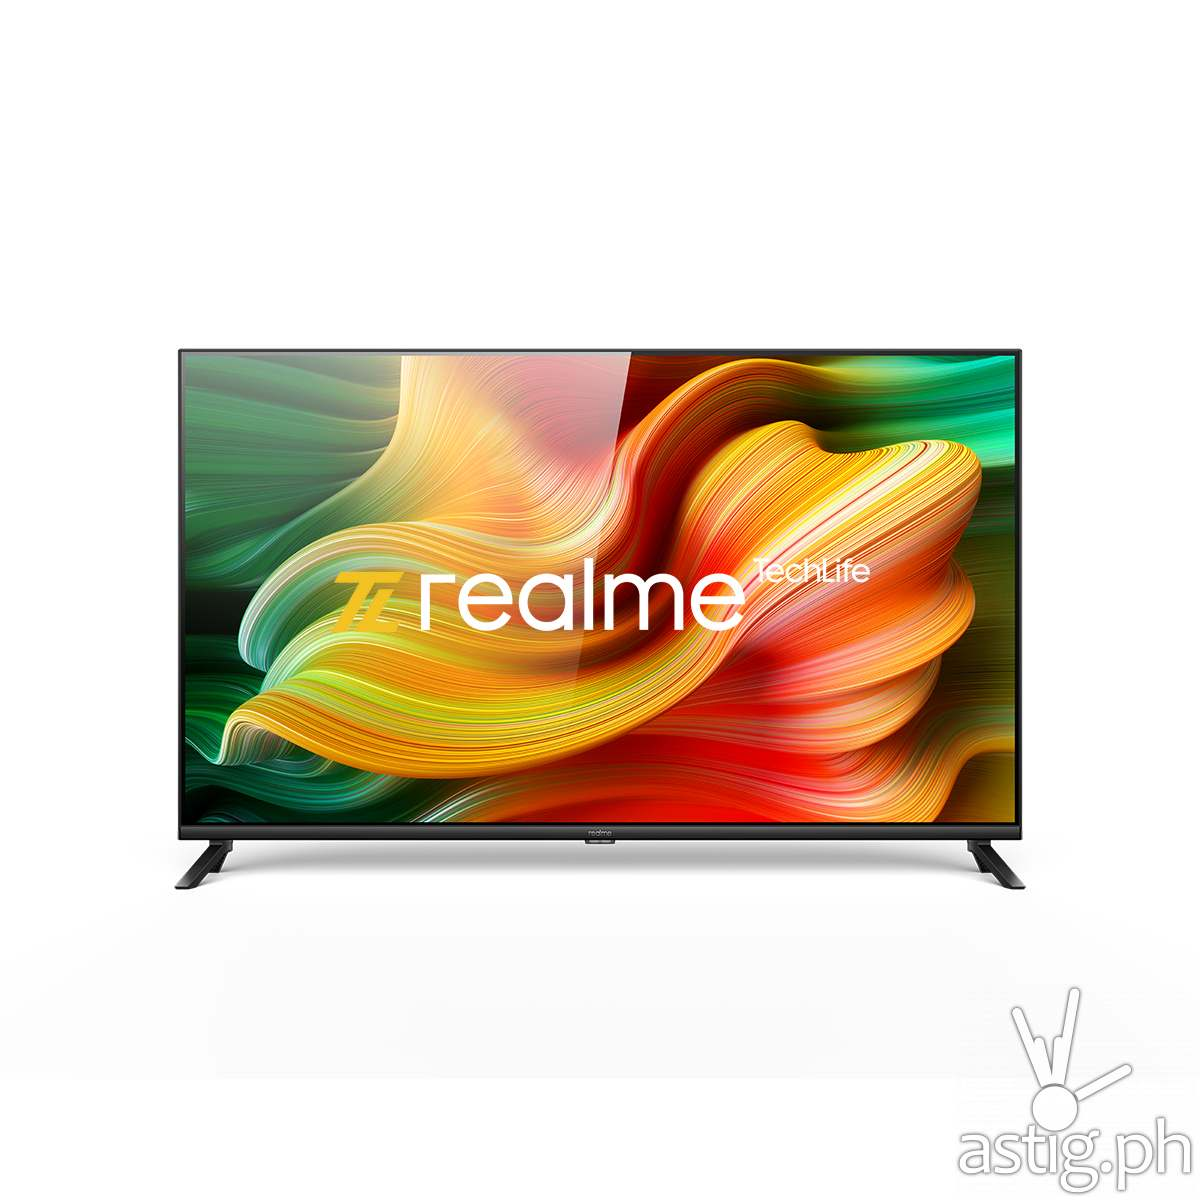 realme Smart TV 43 inches